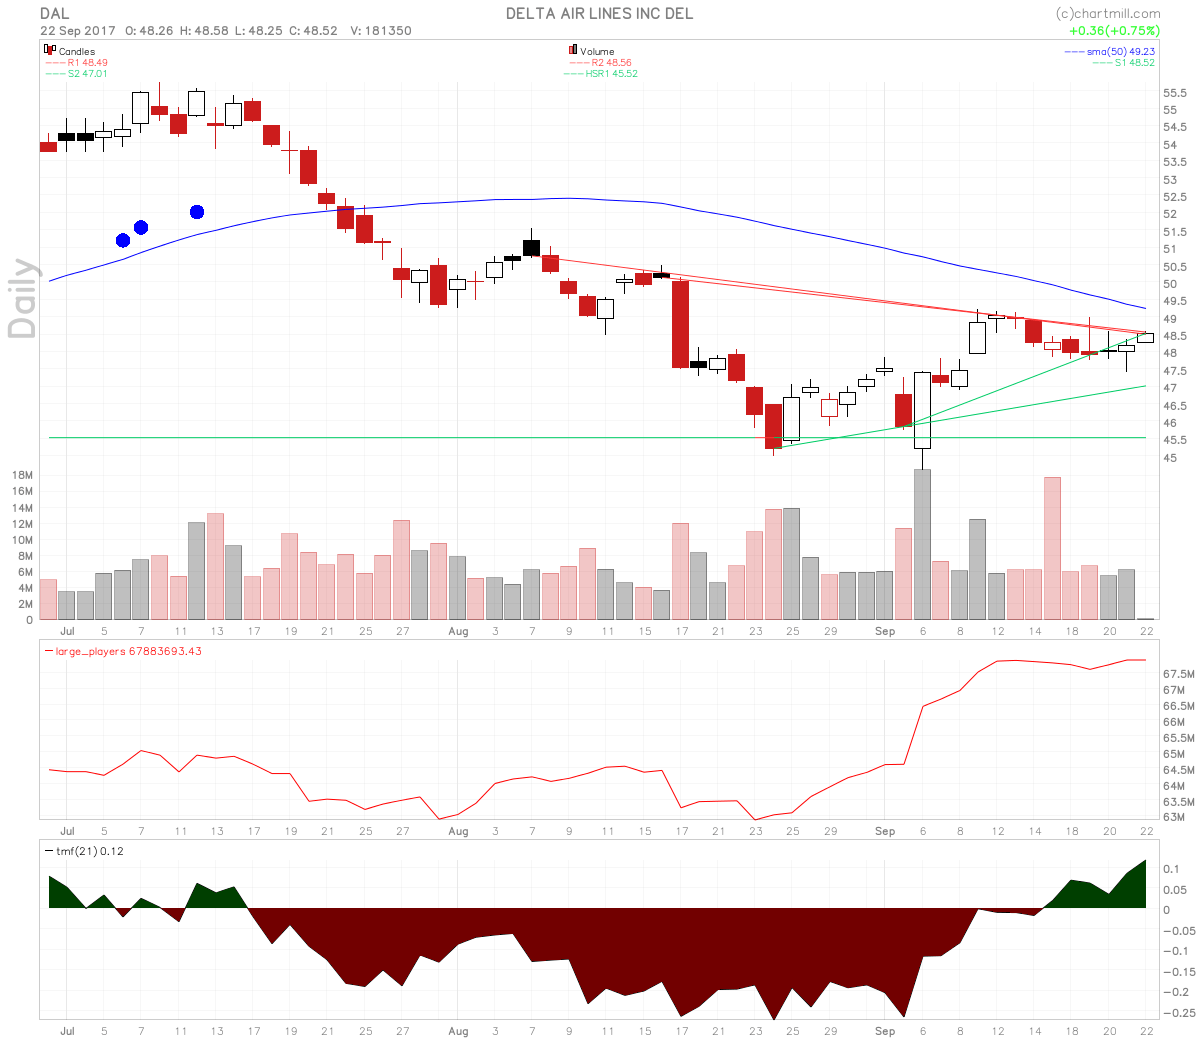 Delta Airlines Stock Does Candle Over Candle Reversal